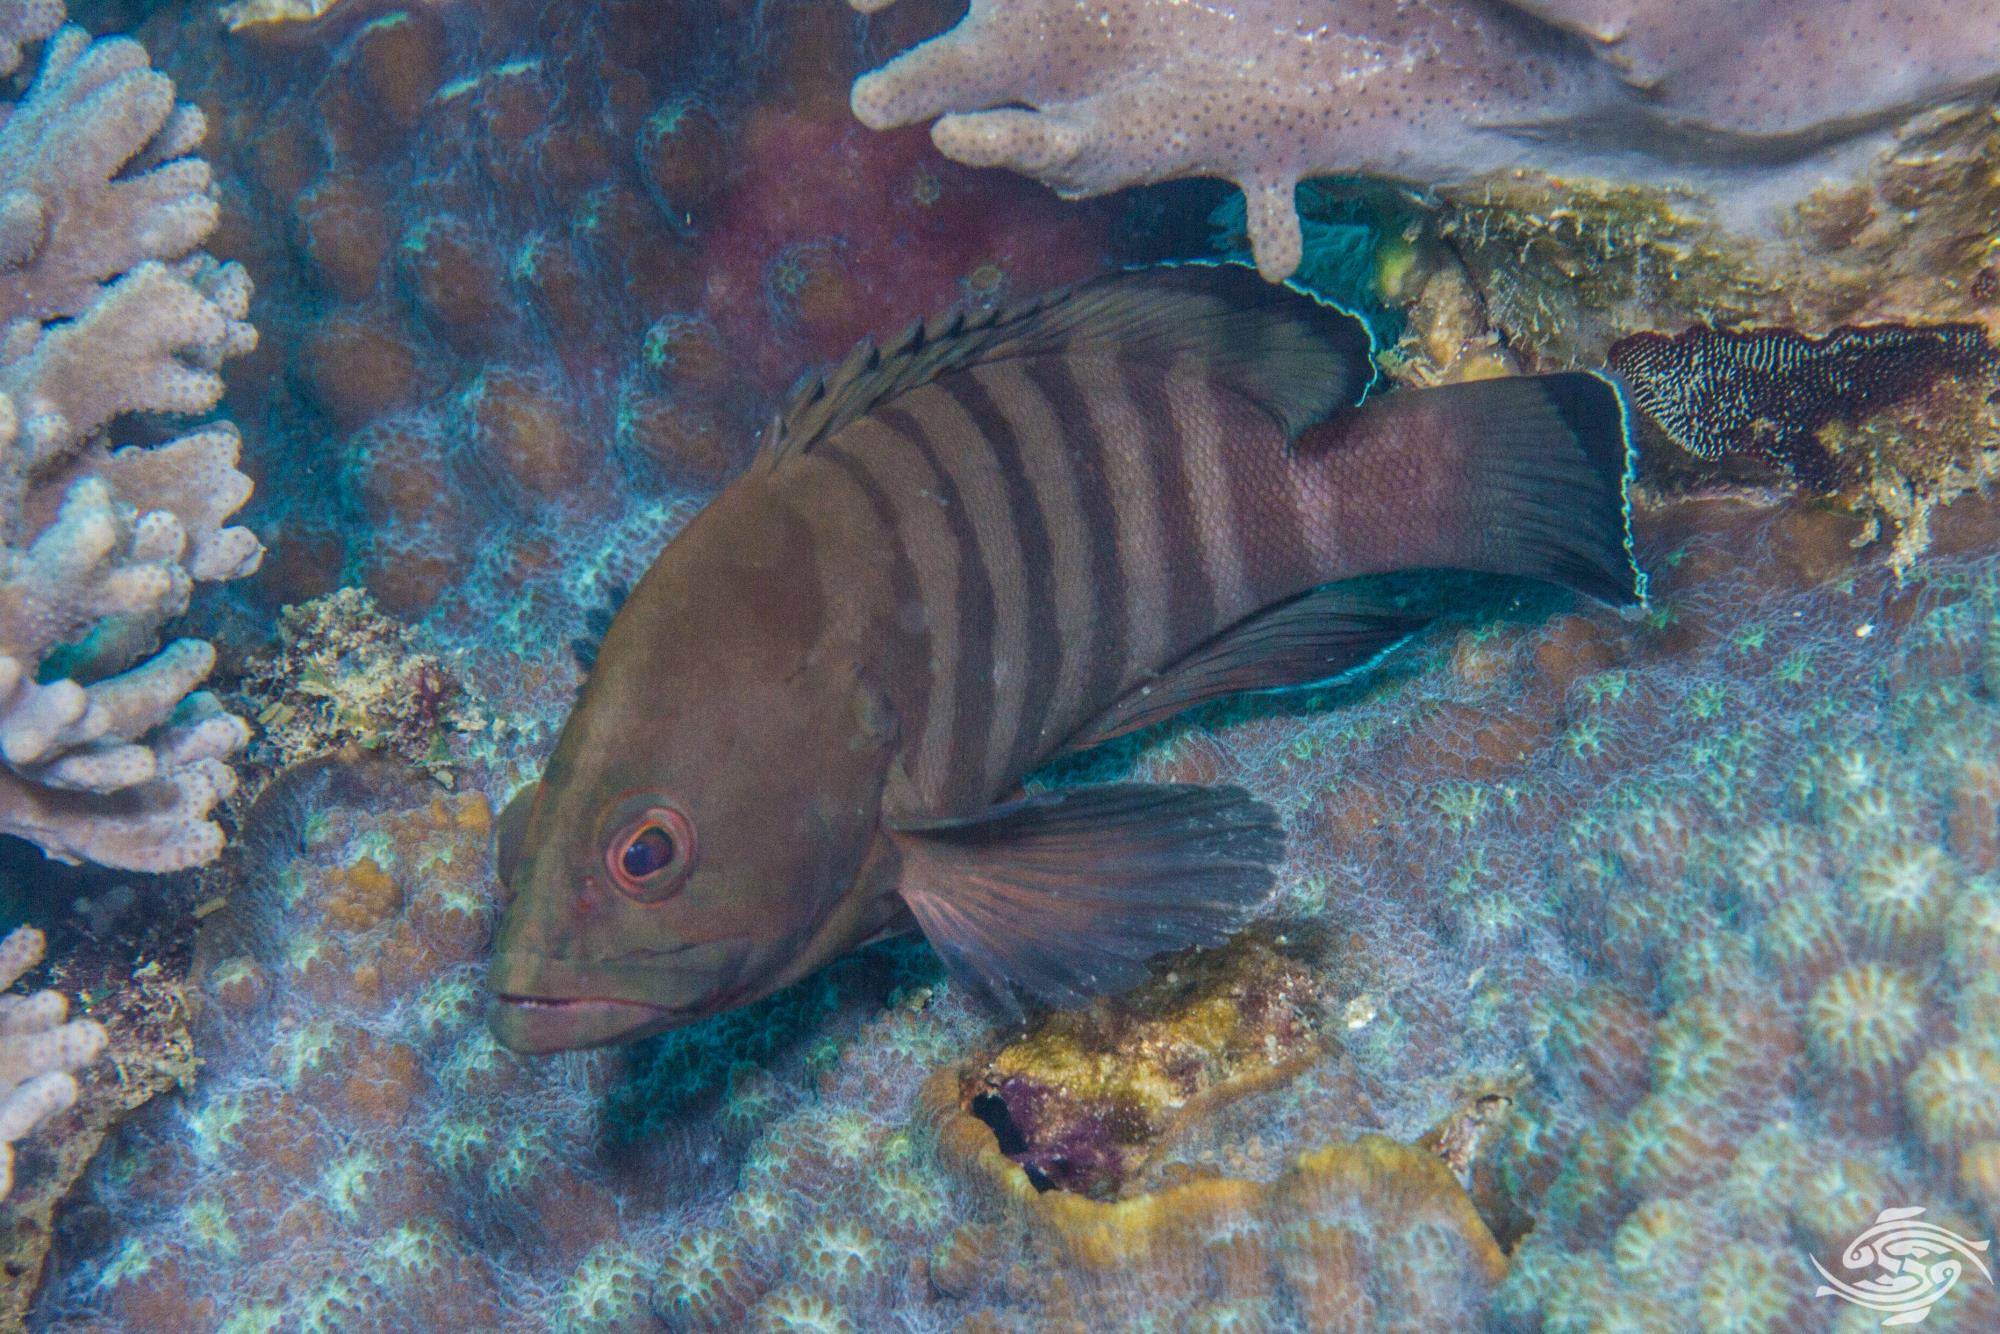 Chocolate Grouper (Cephalopholis boenak)is also known as the Chocolate Hind and the Brownbarred Rockcod